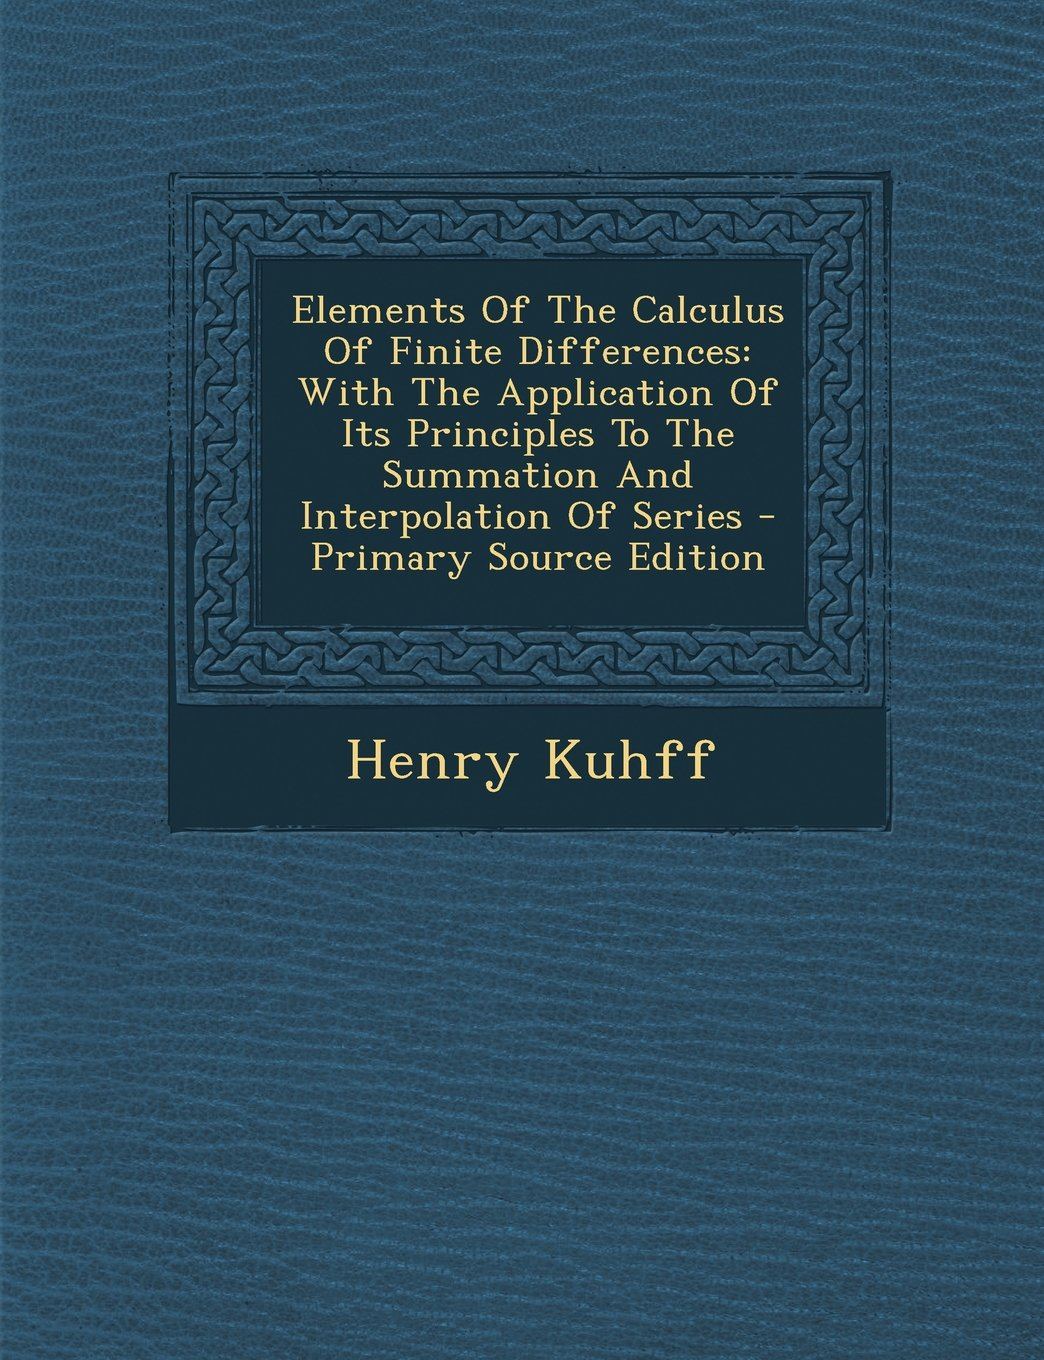 Elements of the Calculus of Finite Differences: With the